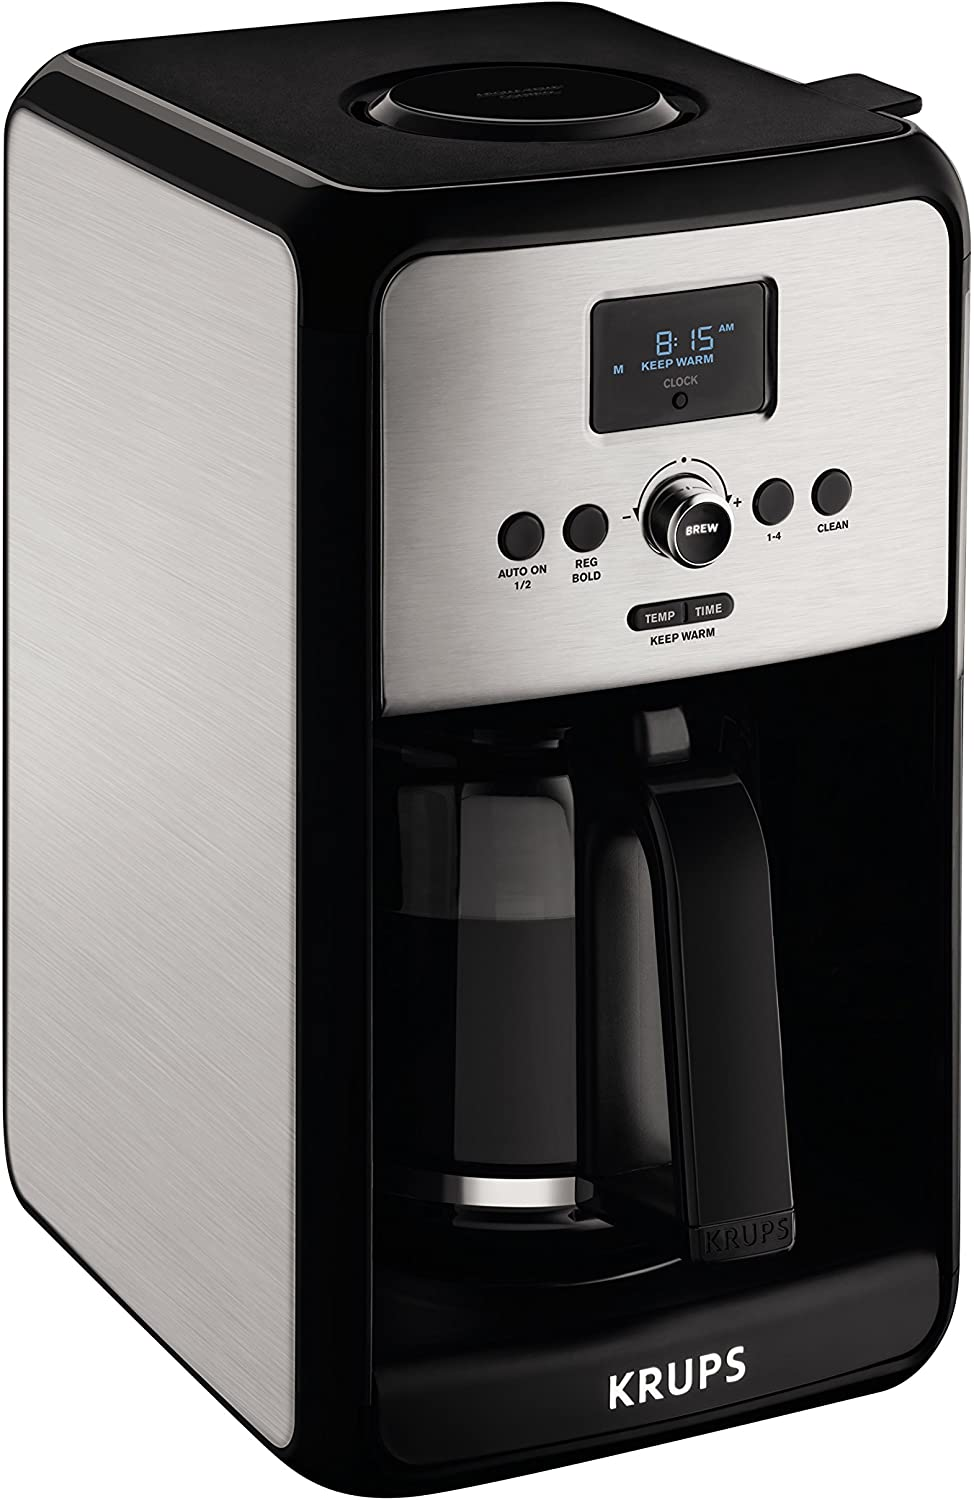 KRUPS EC314 German Coffee Maker